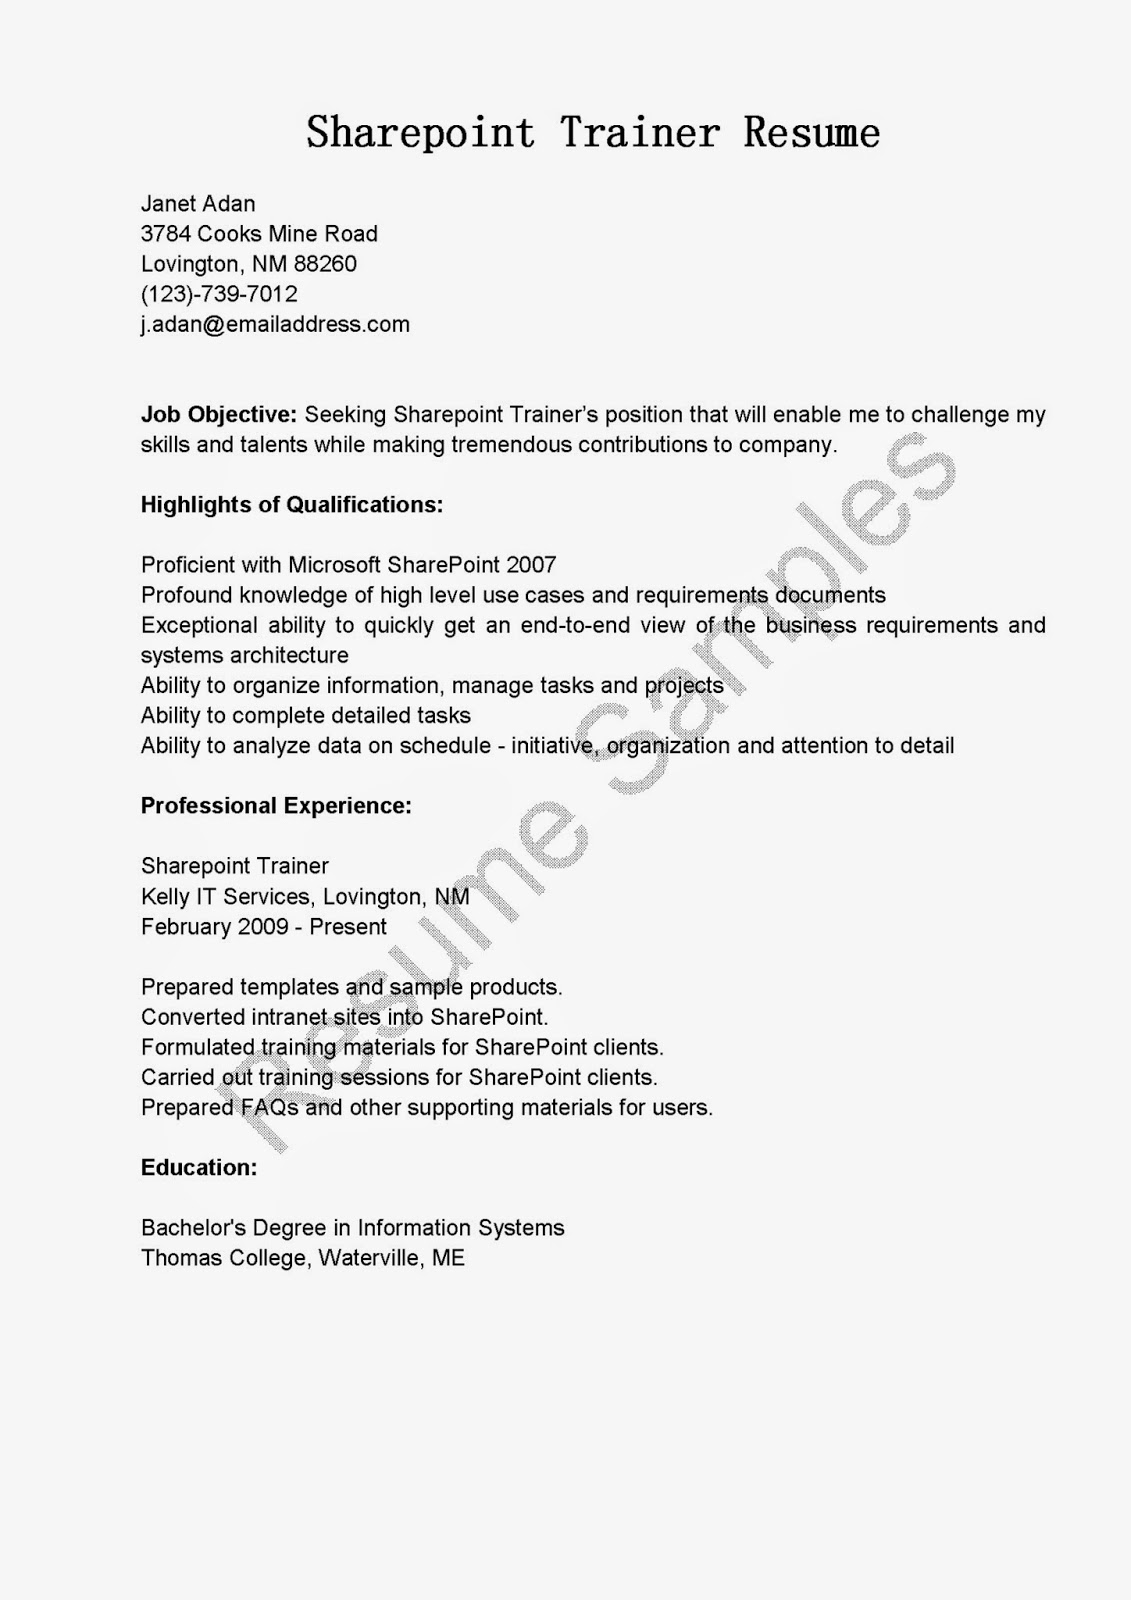 resume samples  sharepoint trainer resume sample